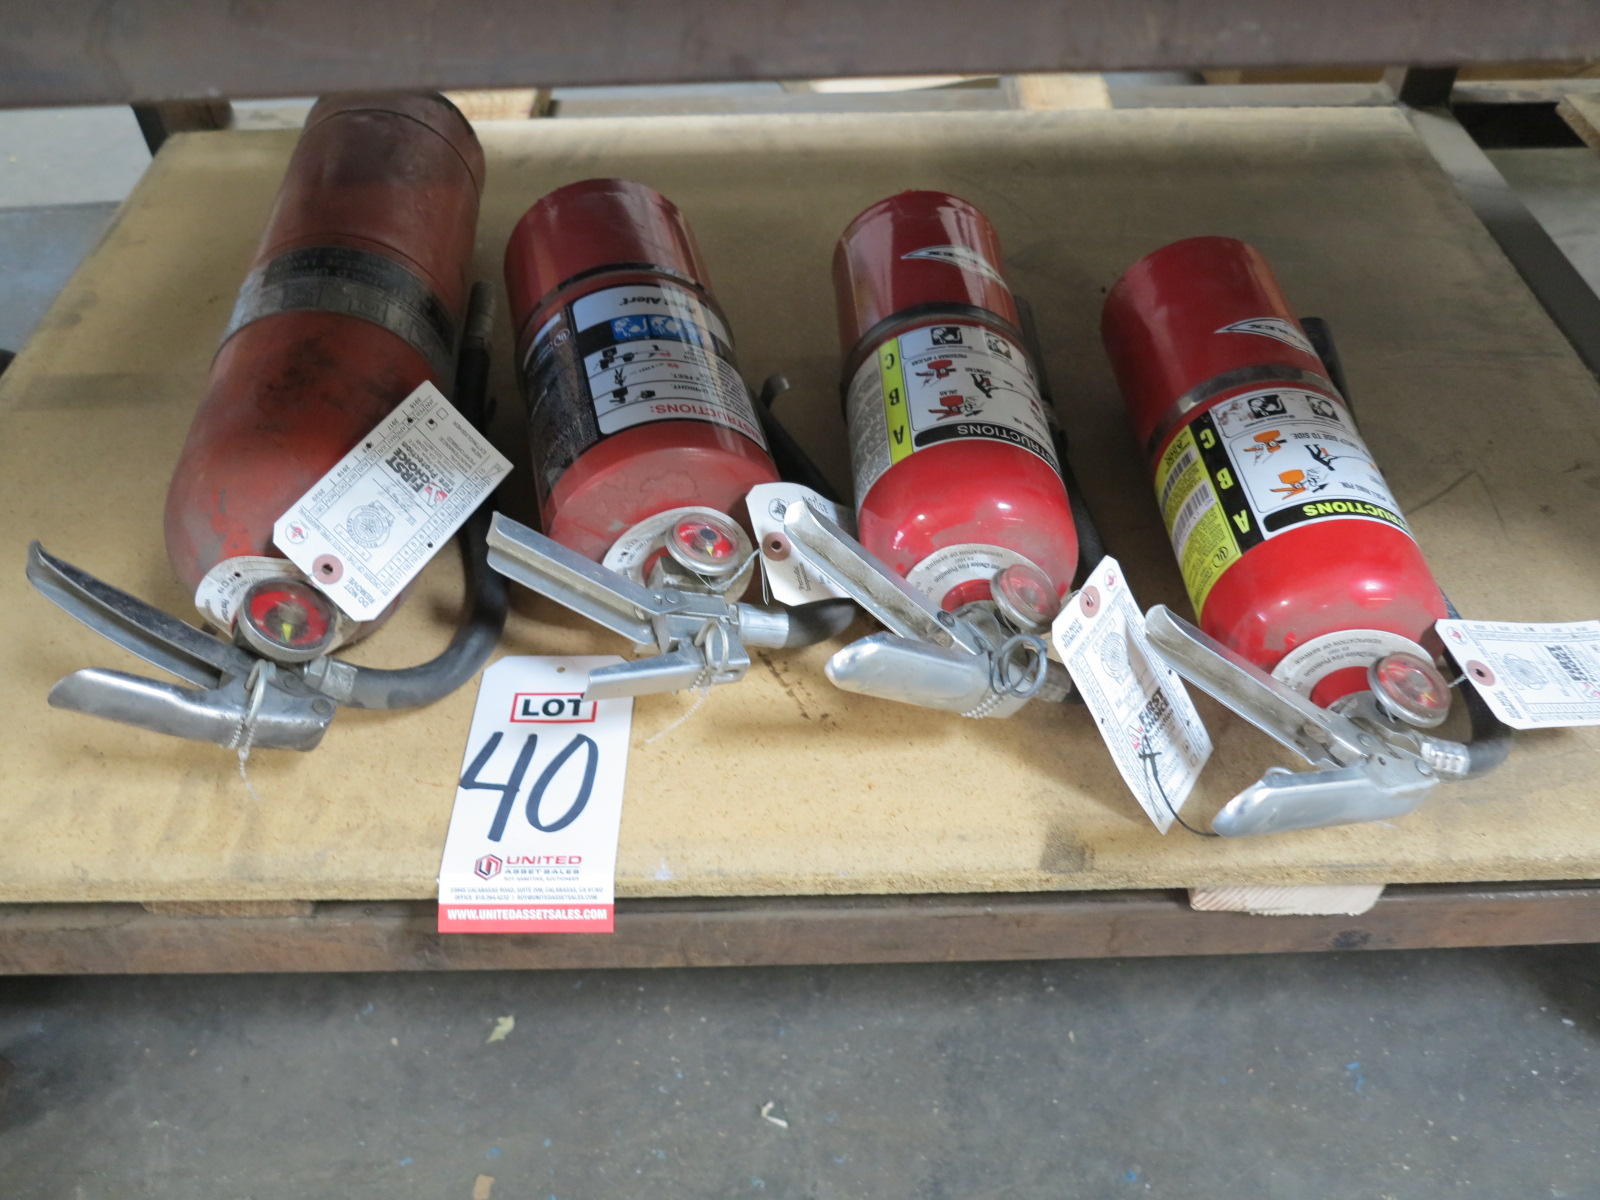 LOT - (4) FIRE EXTINGUISHERS